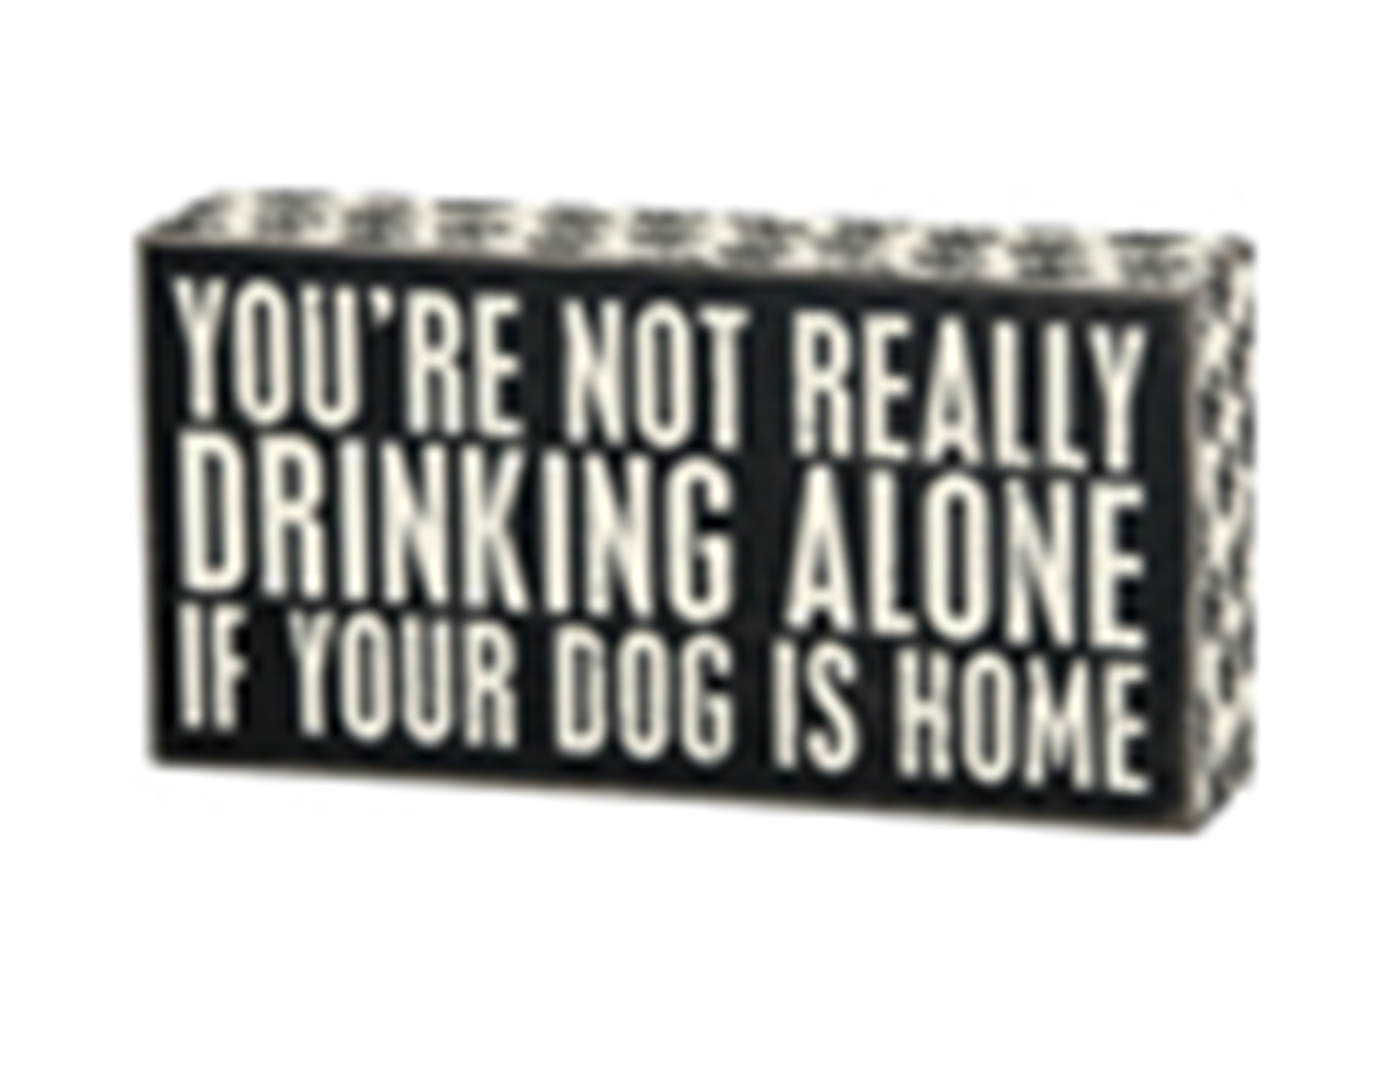 Drinking Alone Dog Is Home Sign 8X4""